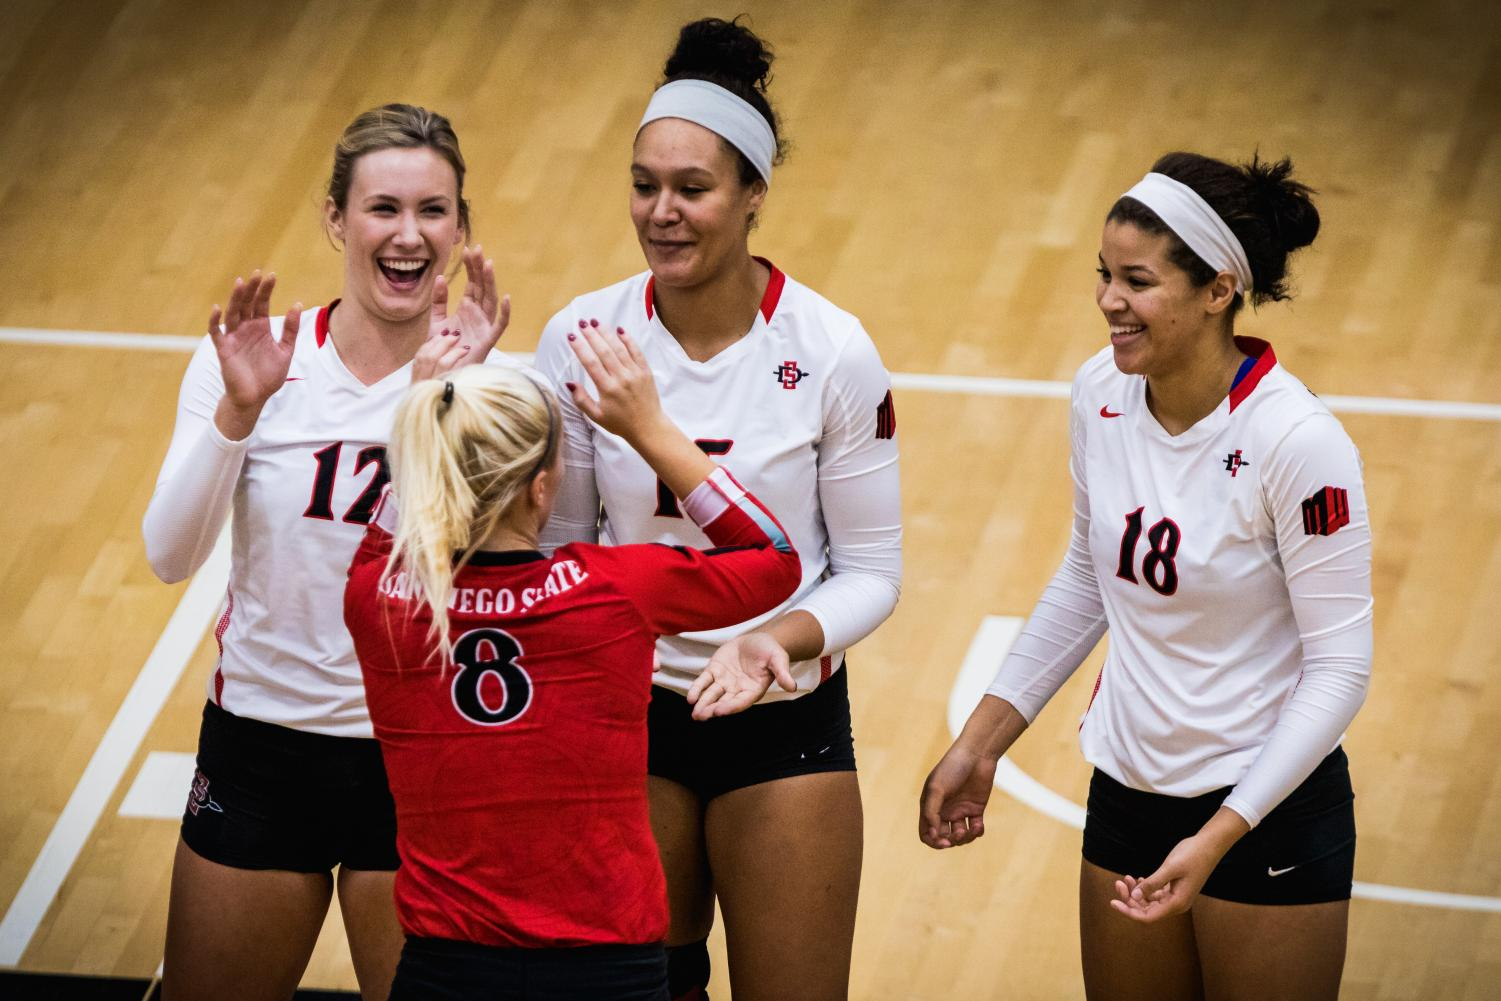 (Left to right) sophomore middle blocker Erin Gilchrist, senior middle blocker Deja Harris and junior middle blocker Tamia Reeves celebrate with redshirt sophomore defensive specialist Loren Teter (front) during the Aztecs three-set victory over Utah State on Nov. 1 at Peterson Gym.